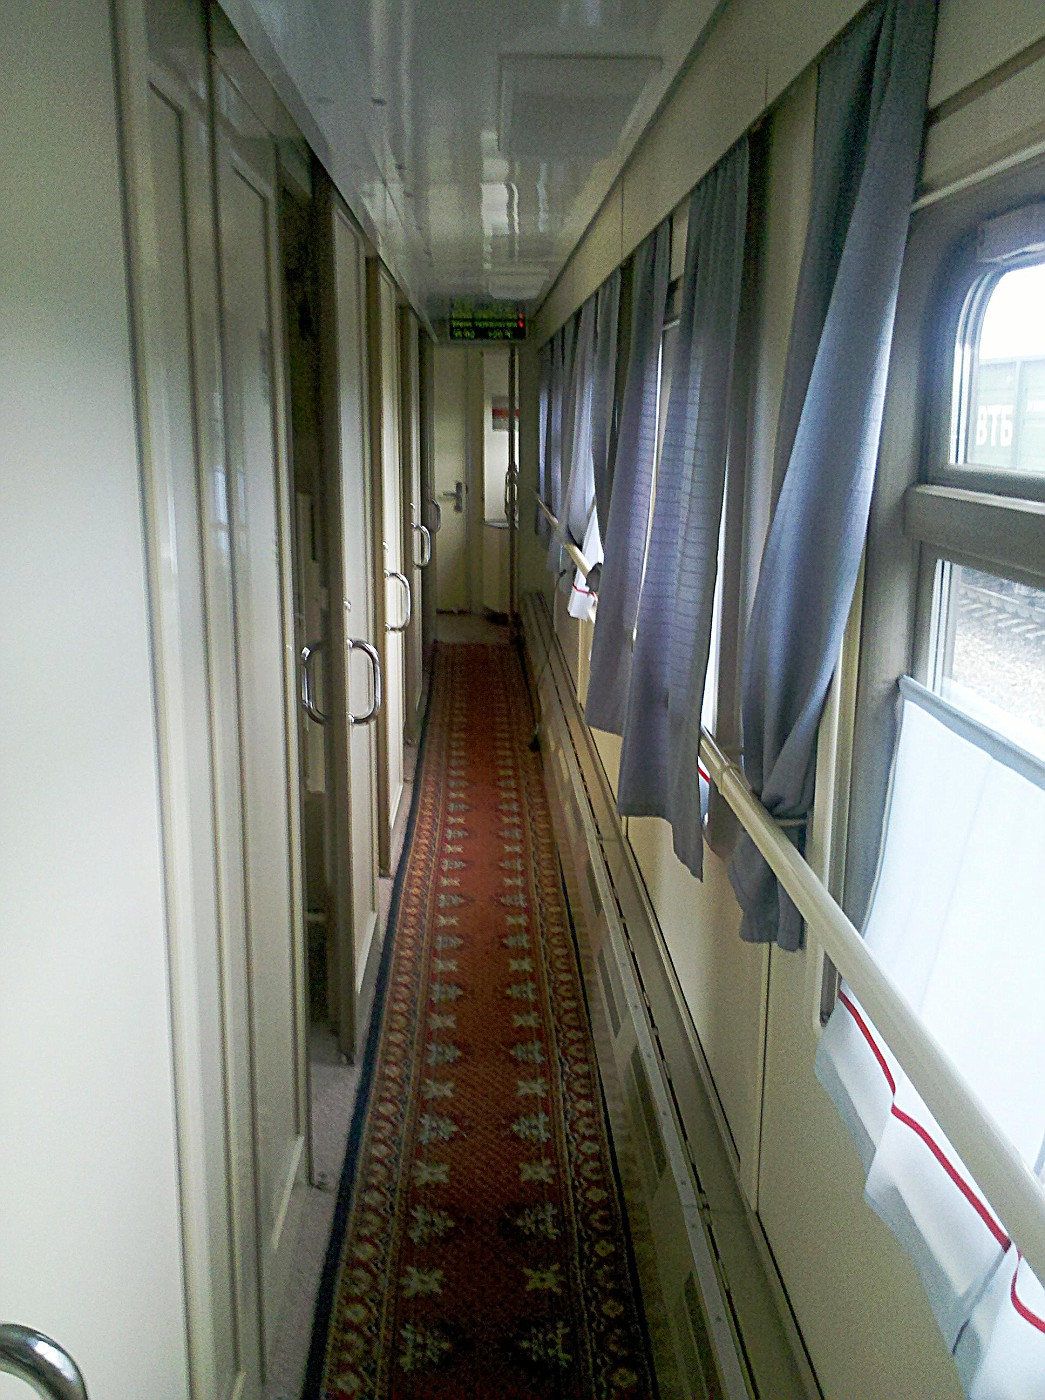 Wagon of the nighttrain to Archangelsk